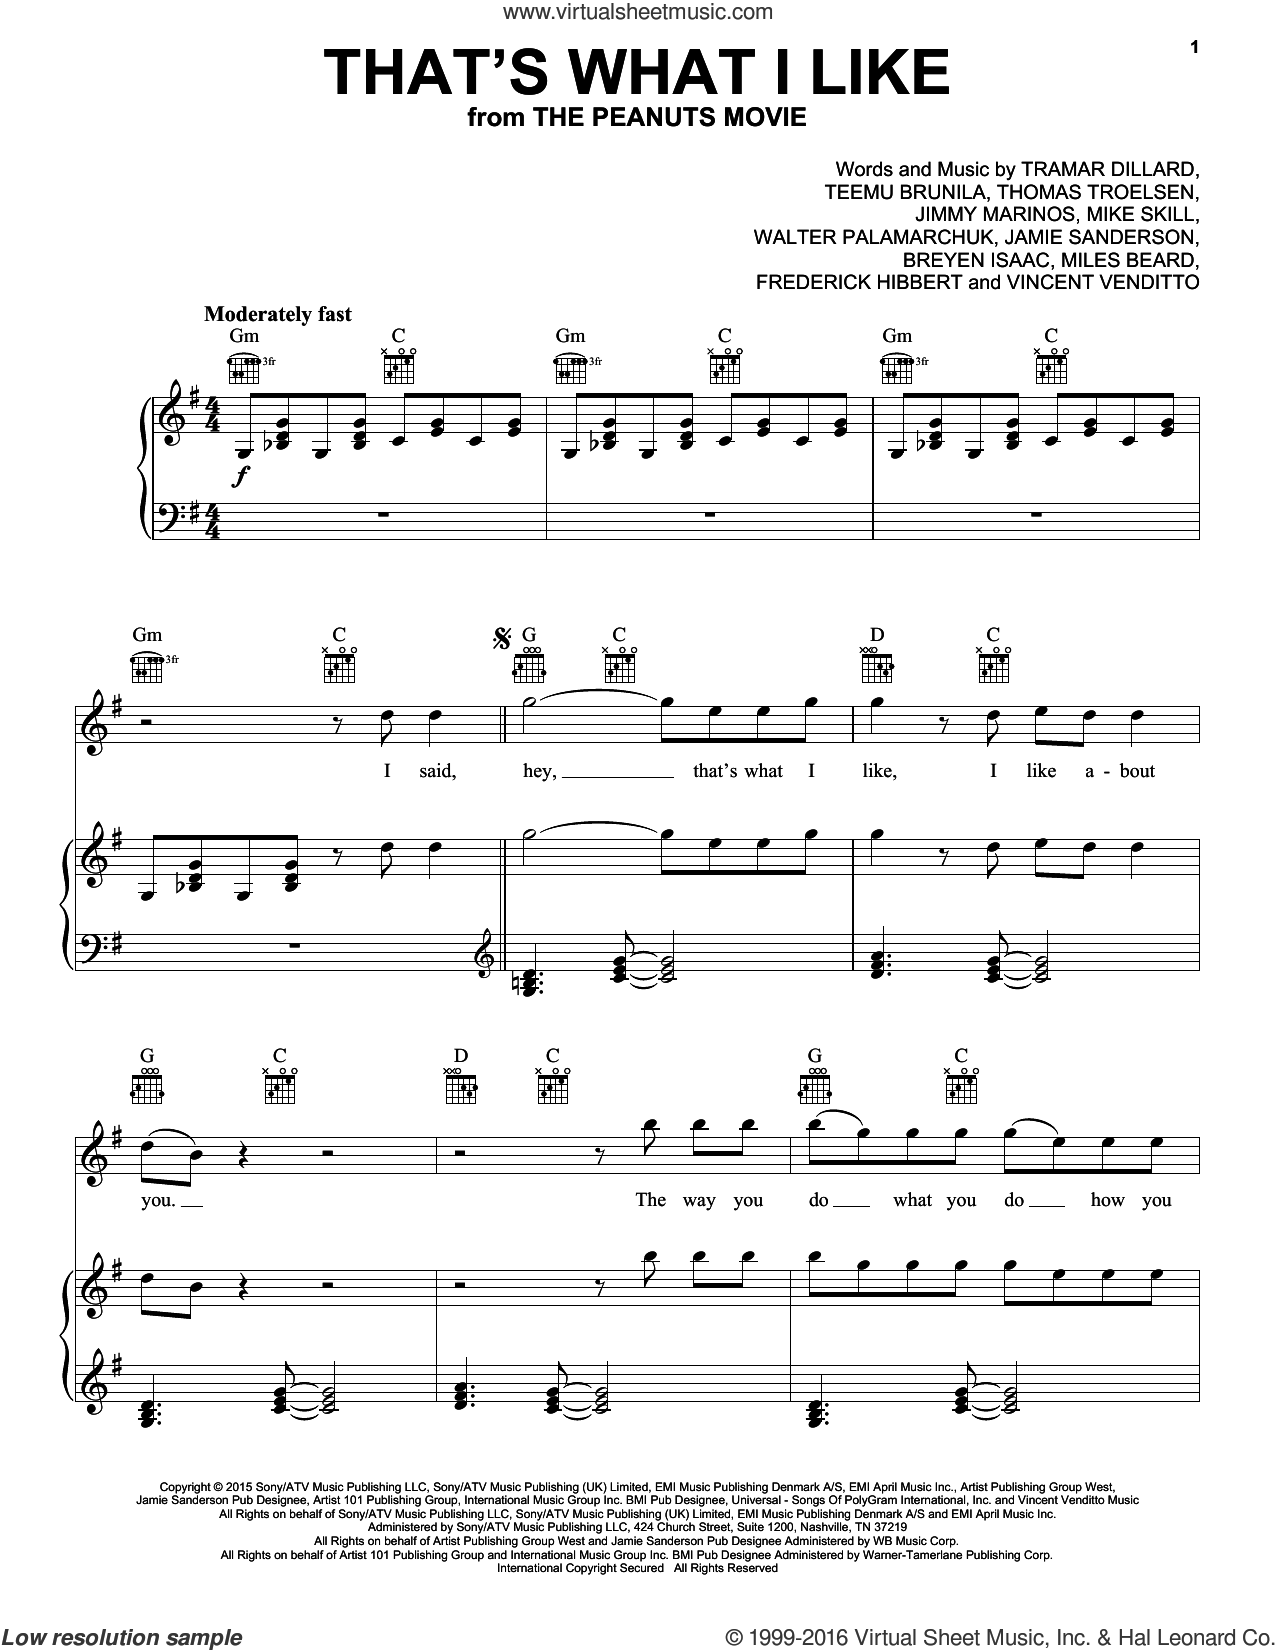 That's What I Like sheet music for voice, piano or guitar by Flo Rida, Christophe Beck, Breyan Isaac, Frederick Hibbert, Jamie Sanderson, Jimmy Marinos, Mike Skill, Miles Beard, Teemu Brunila, Thomas Troelsen, Tramar Dillard, Vincent Venditto and Walter Palamarchuk, intermediate skill level